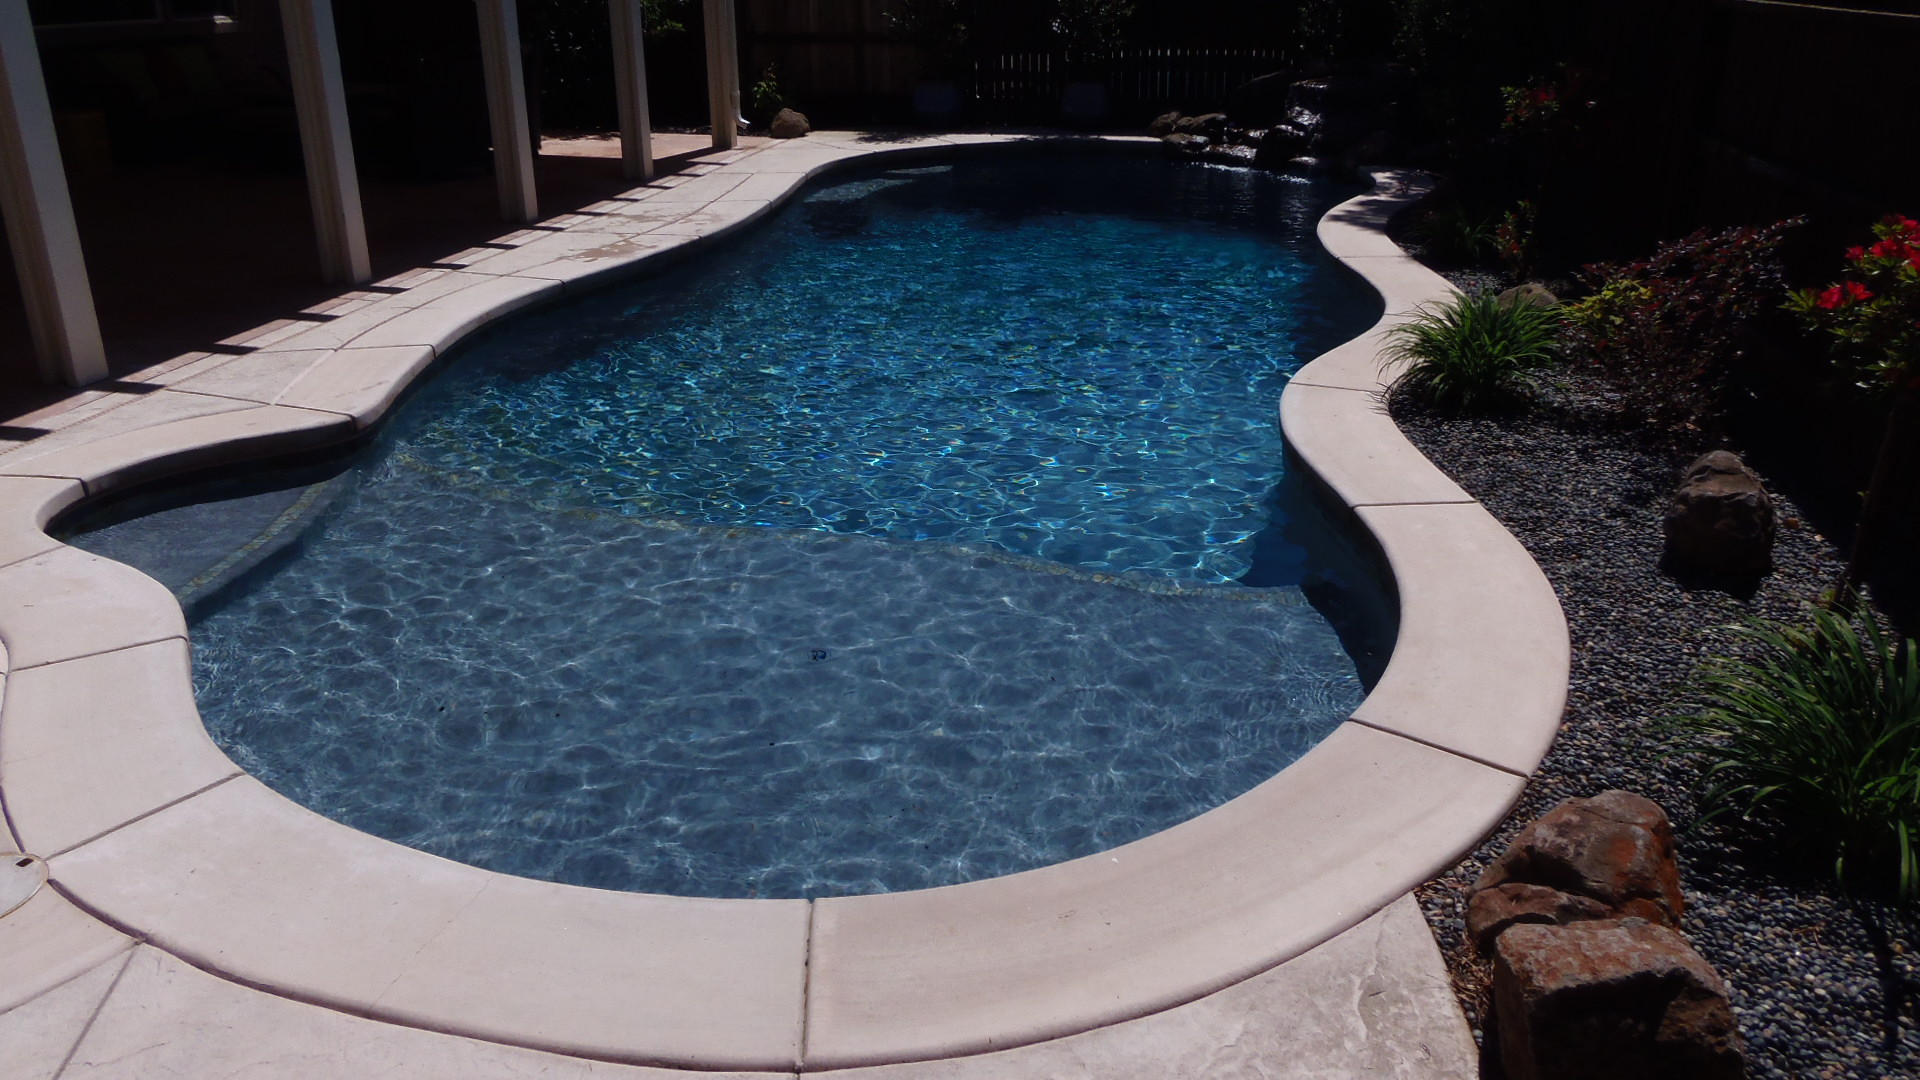 The finished Pool and landscape